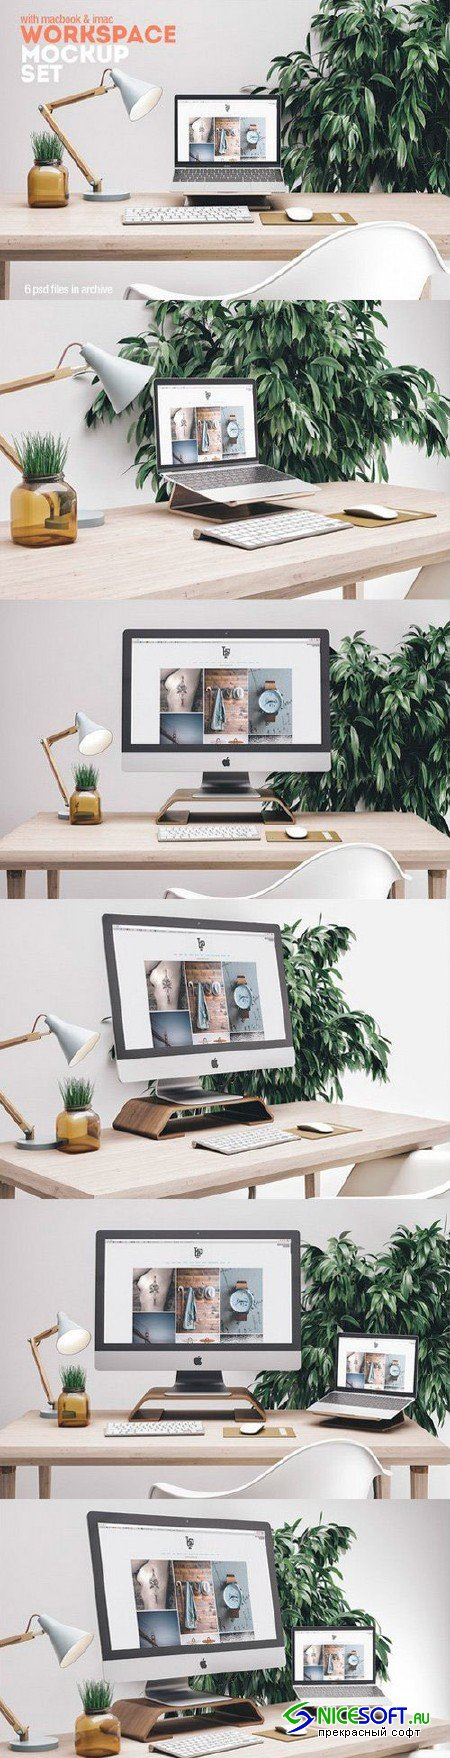 Workspace Mockup Set 5 - Creativemarket 707383